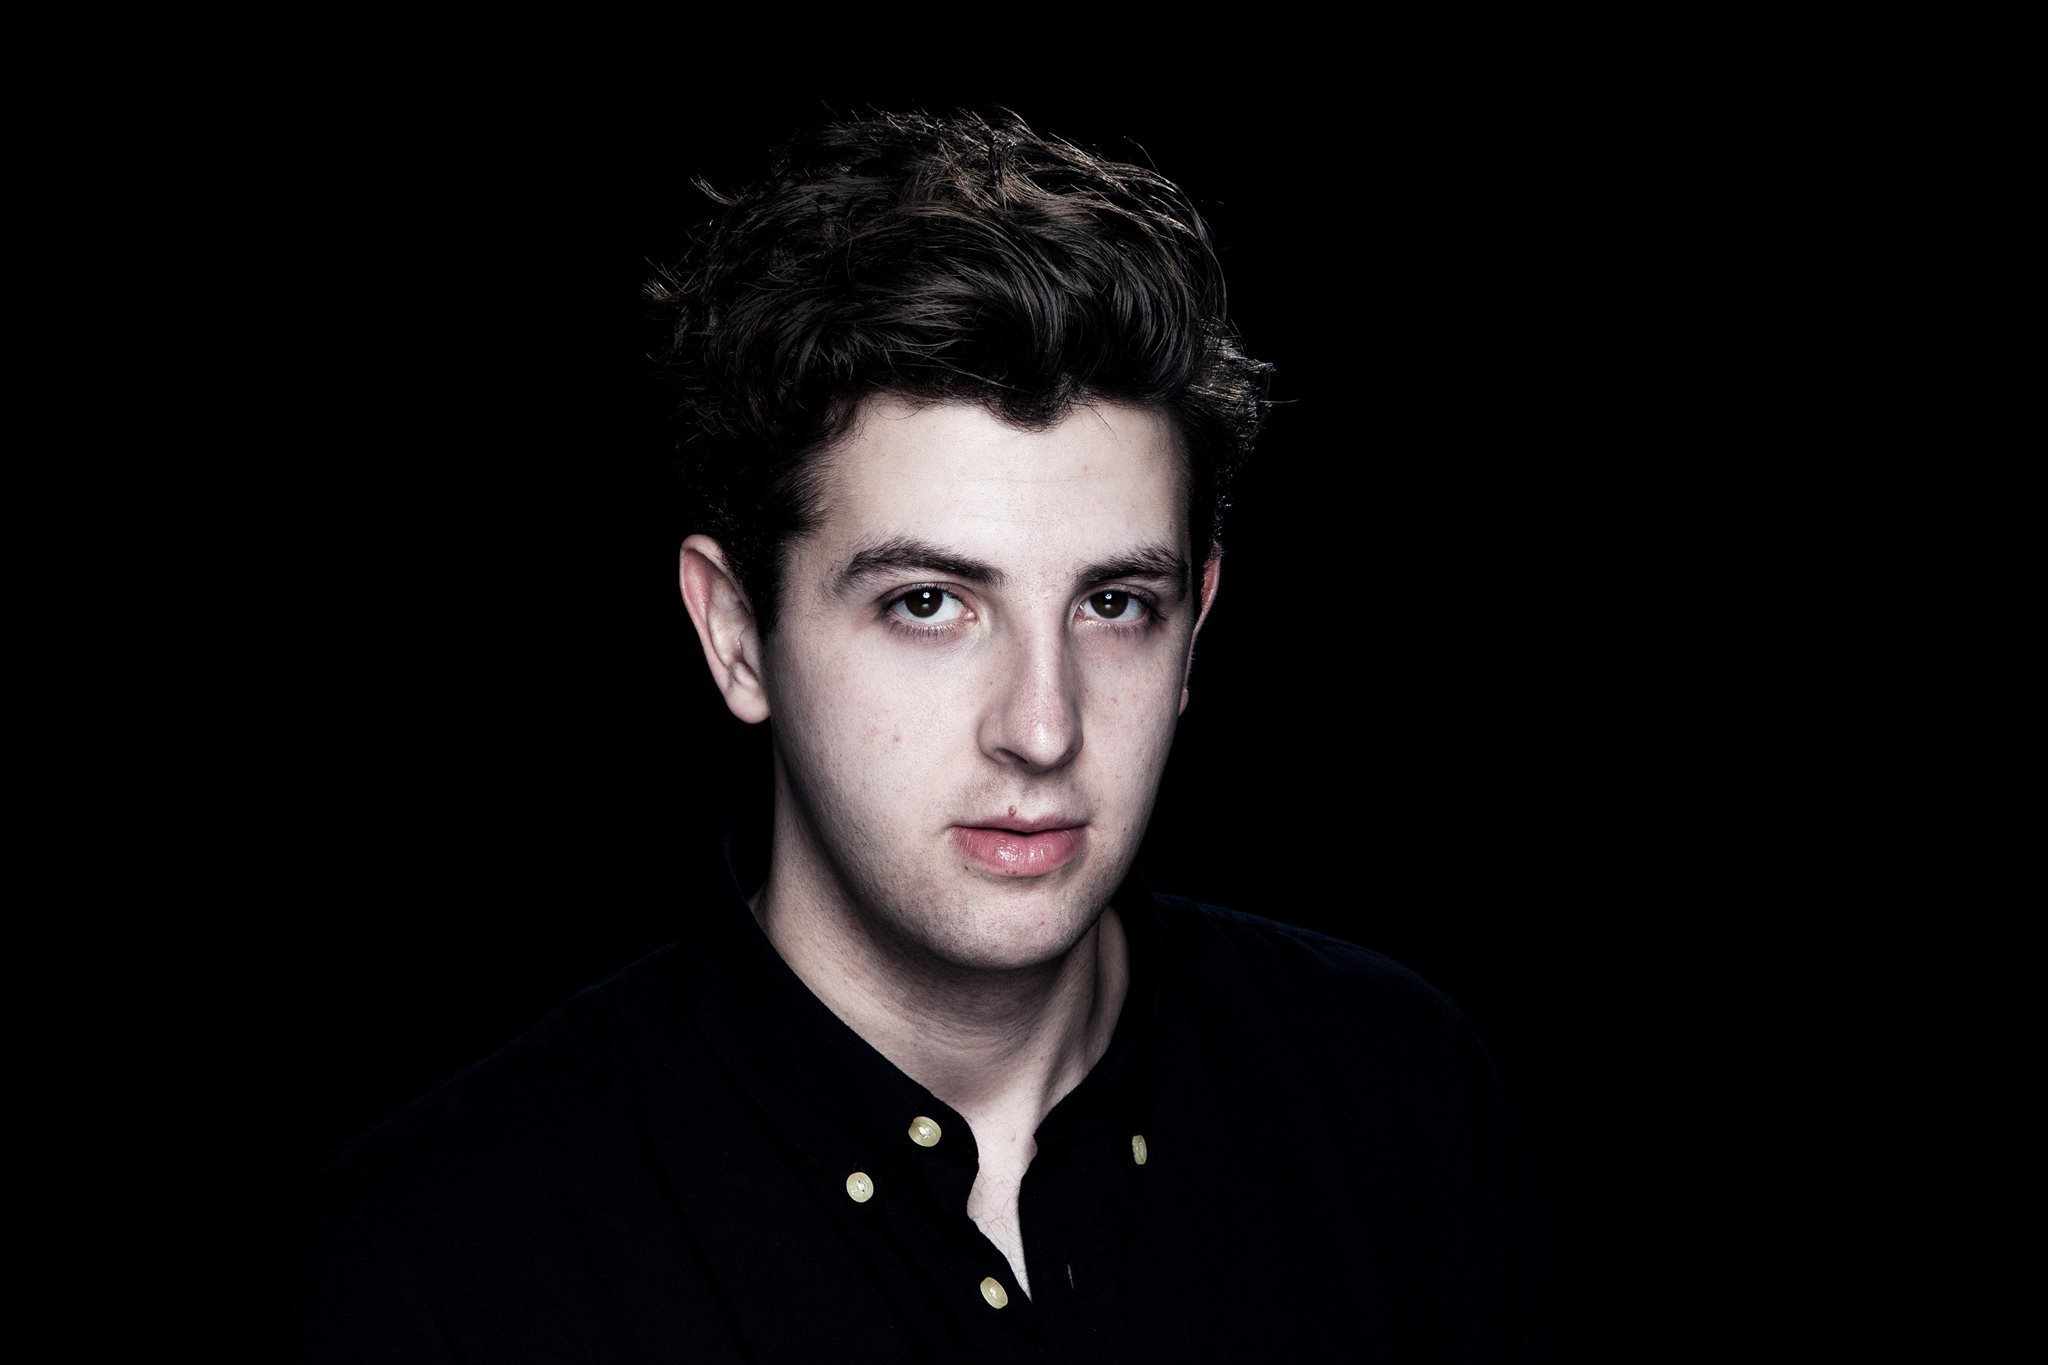 Jamie xx - Trummaskin / Drum machine of The xx